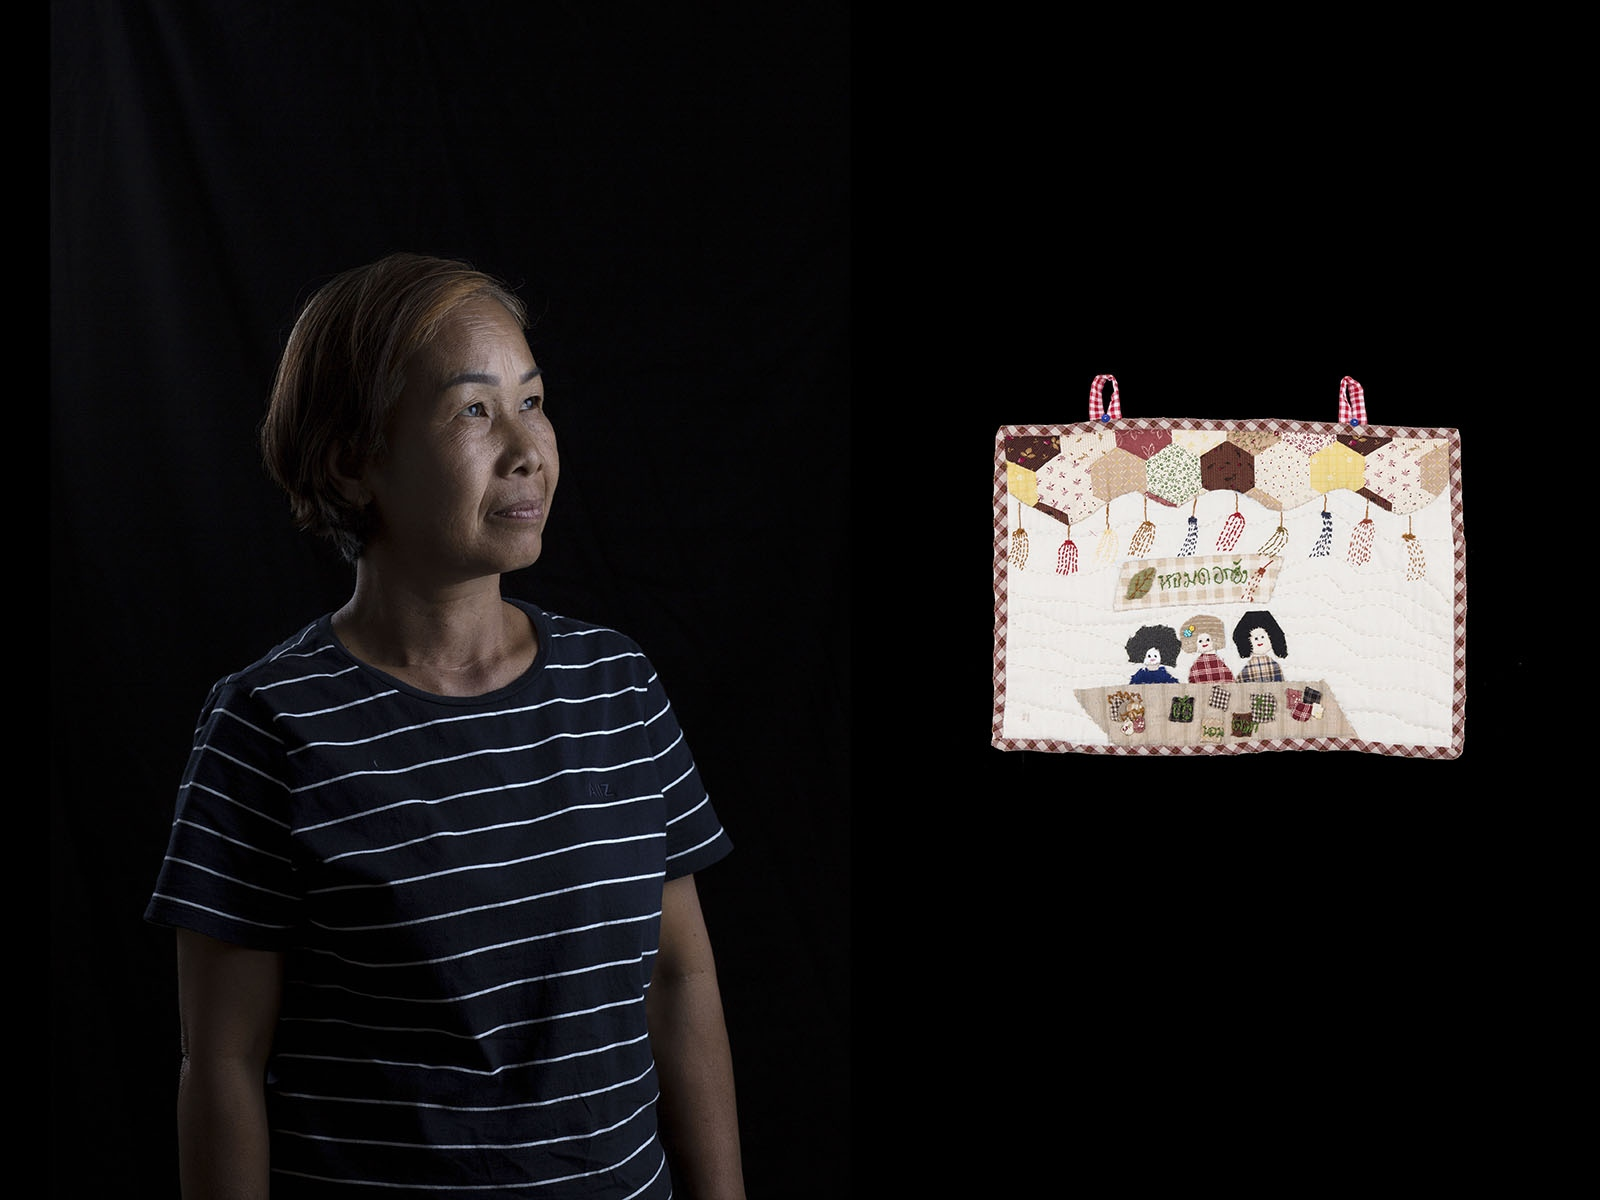 Samai Mangta is a member of the Rak Nam Oum Group in Nakhon Nakhon Province who are objecting to several polluting industrial projects in the area of her community.